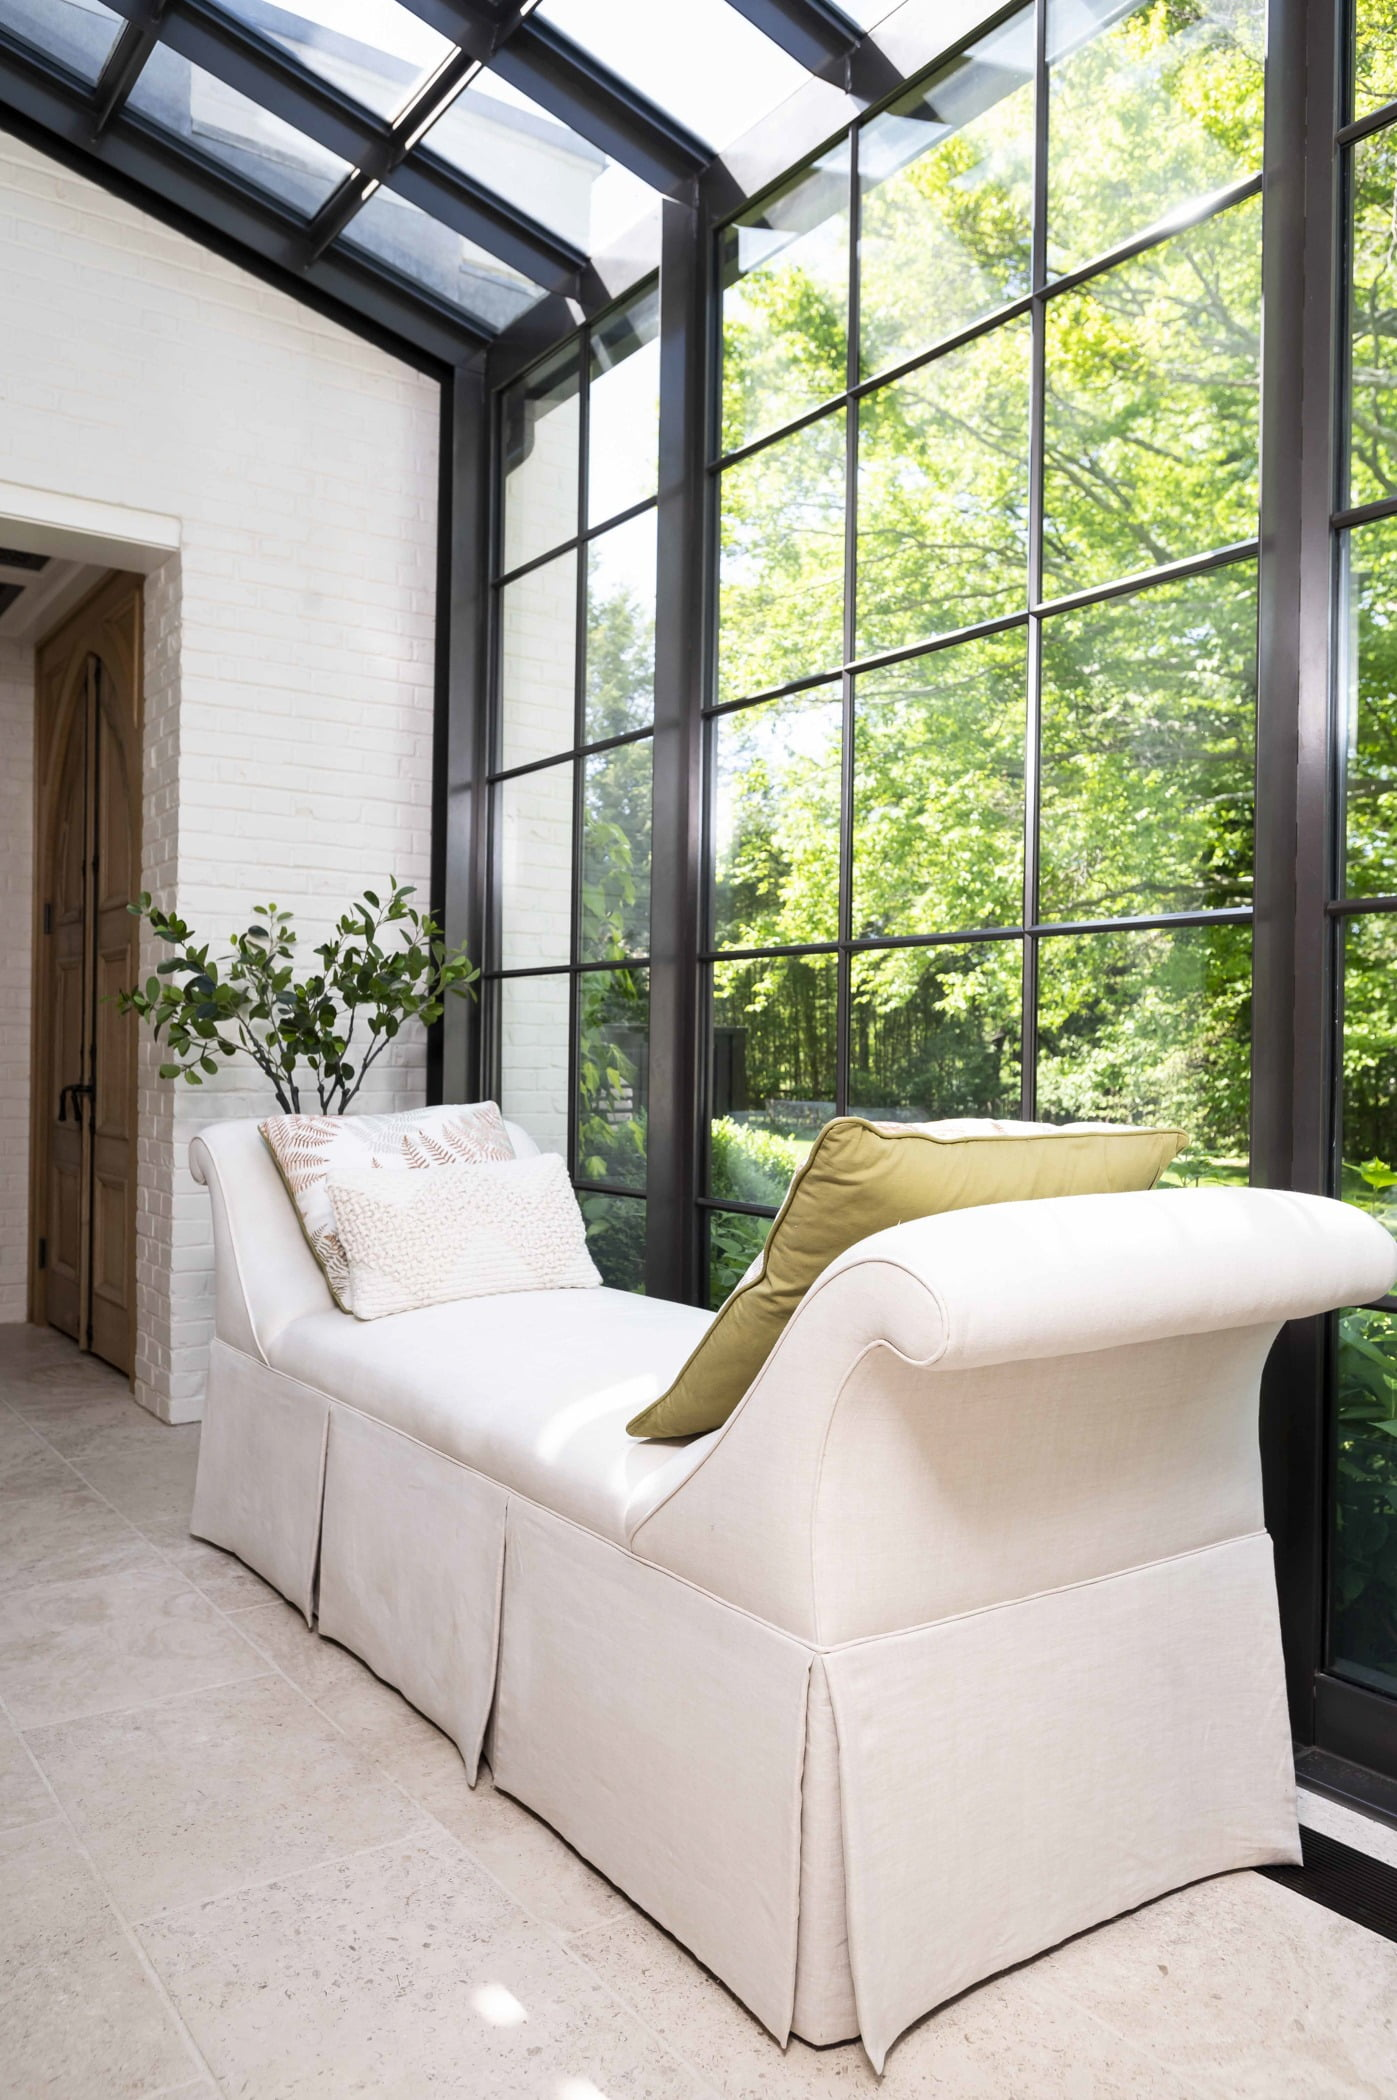 White cushioned lounge chair/bench beside black metal window frames